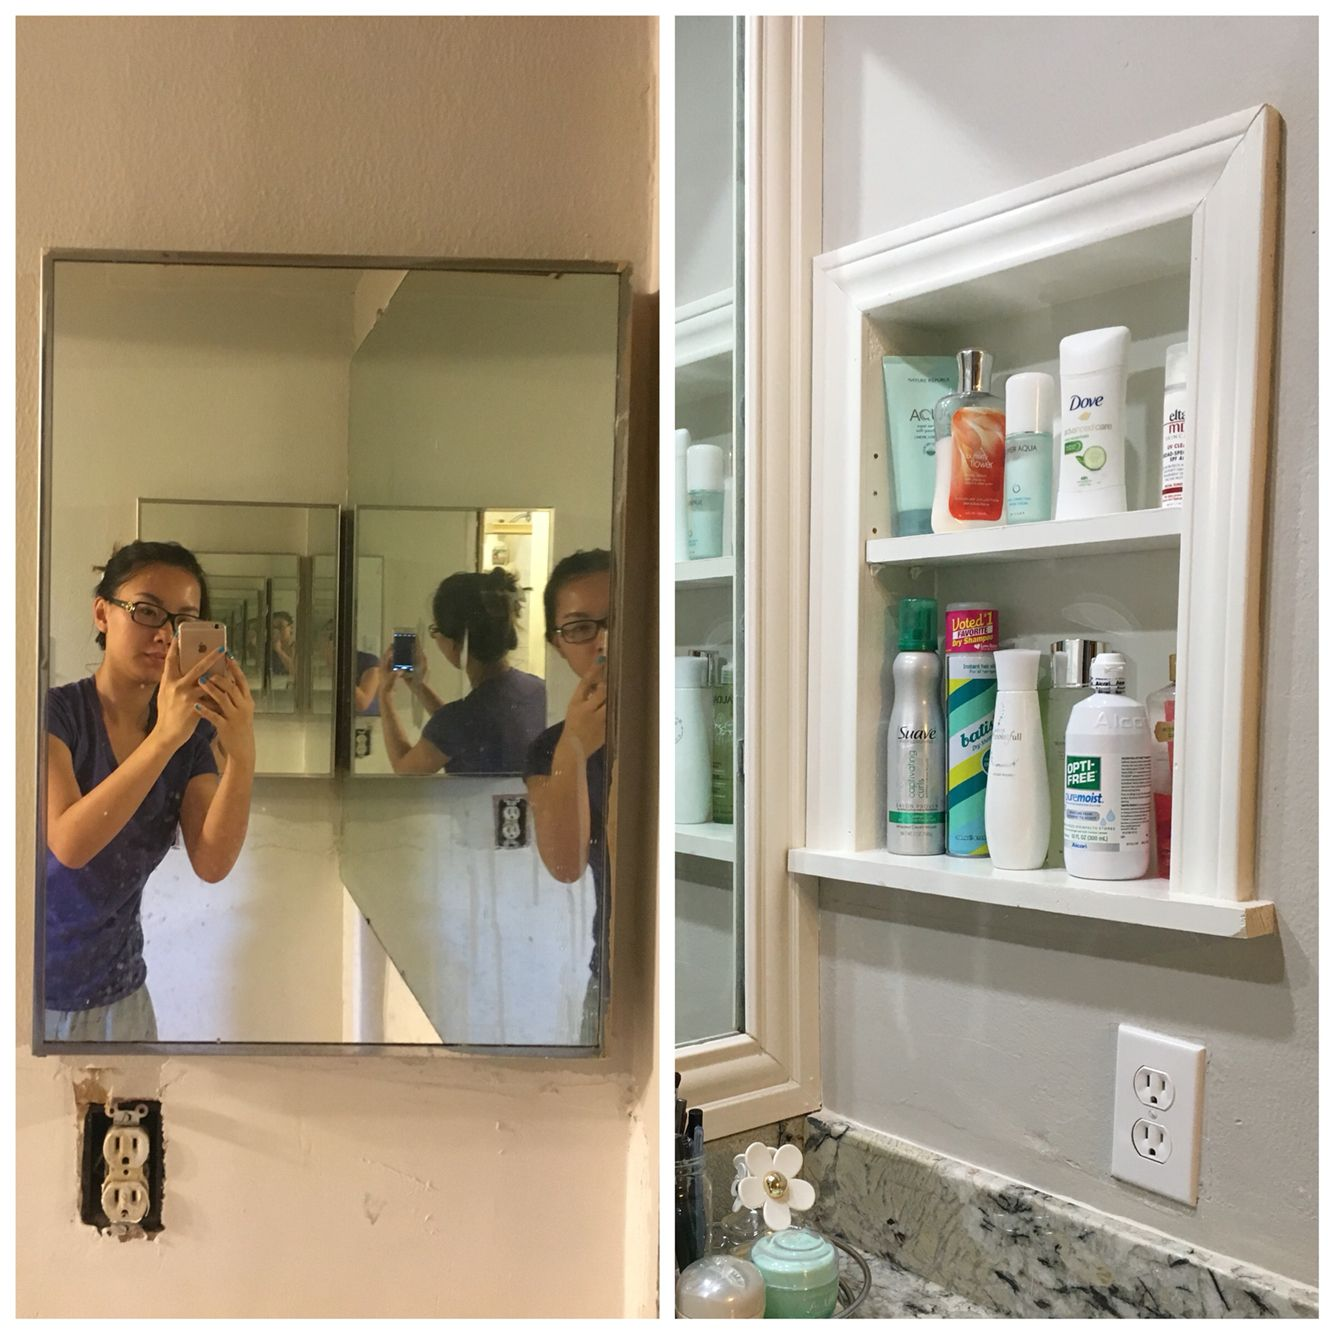 Replaced Old Medicine Cabinet With Scrap Wood Build In With Adjustable Shelves Old Medicine Cabinets Bathroom Mirror Adjustable Shelving